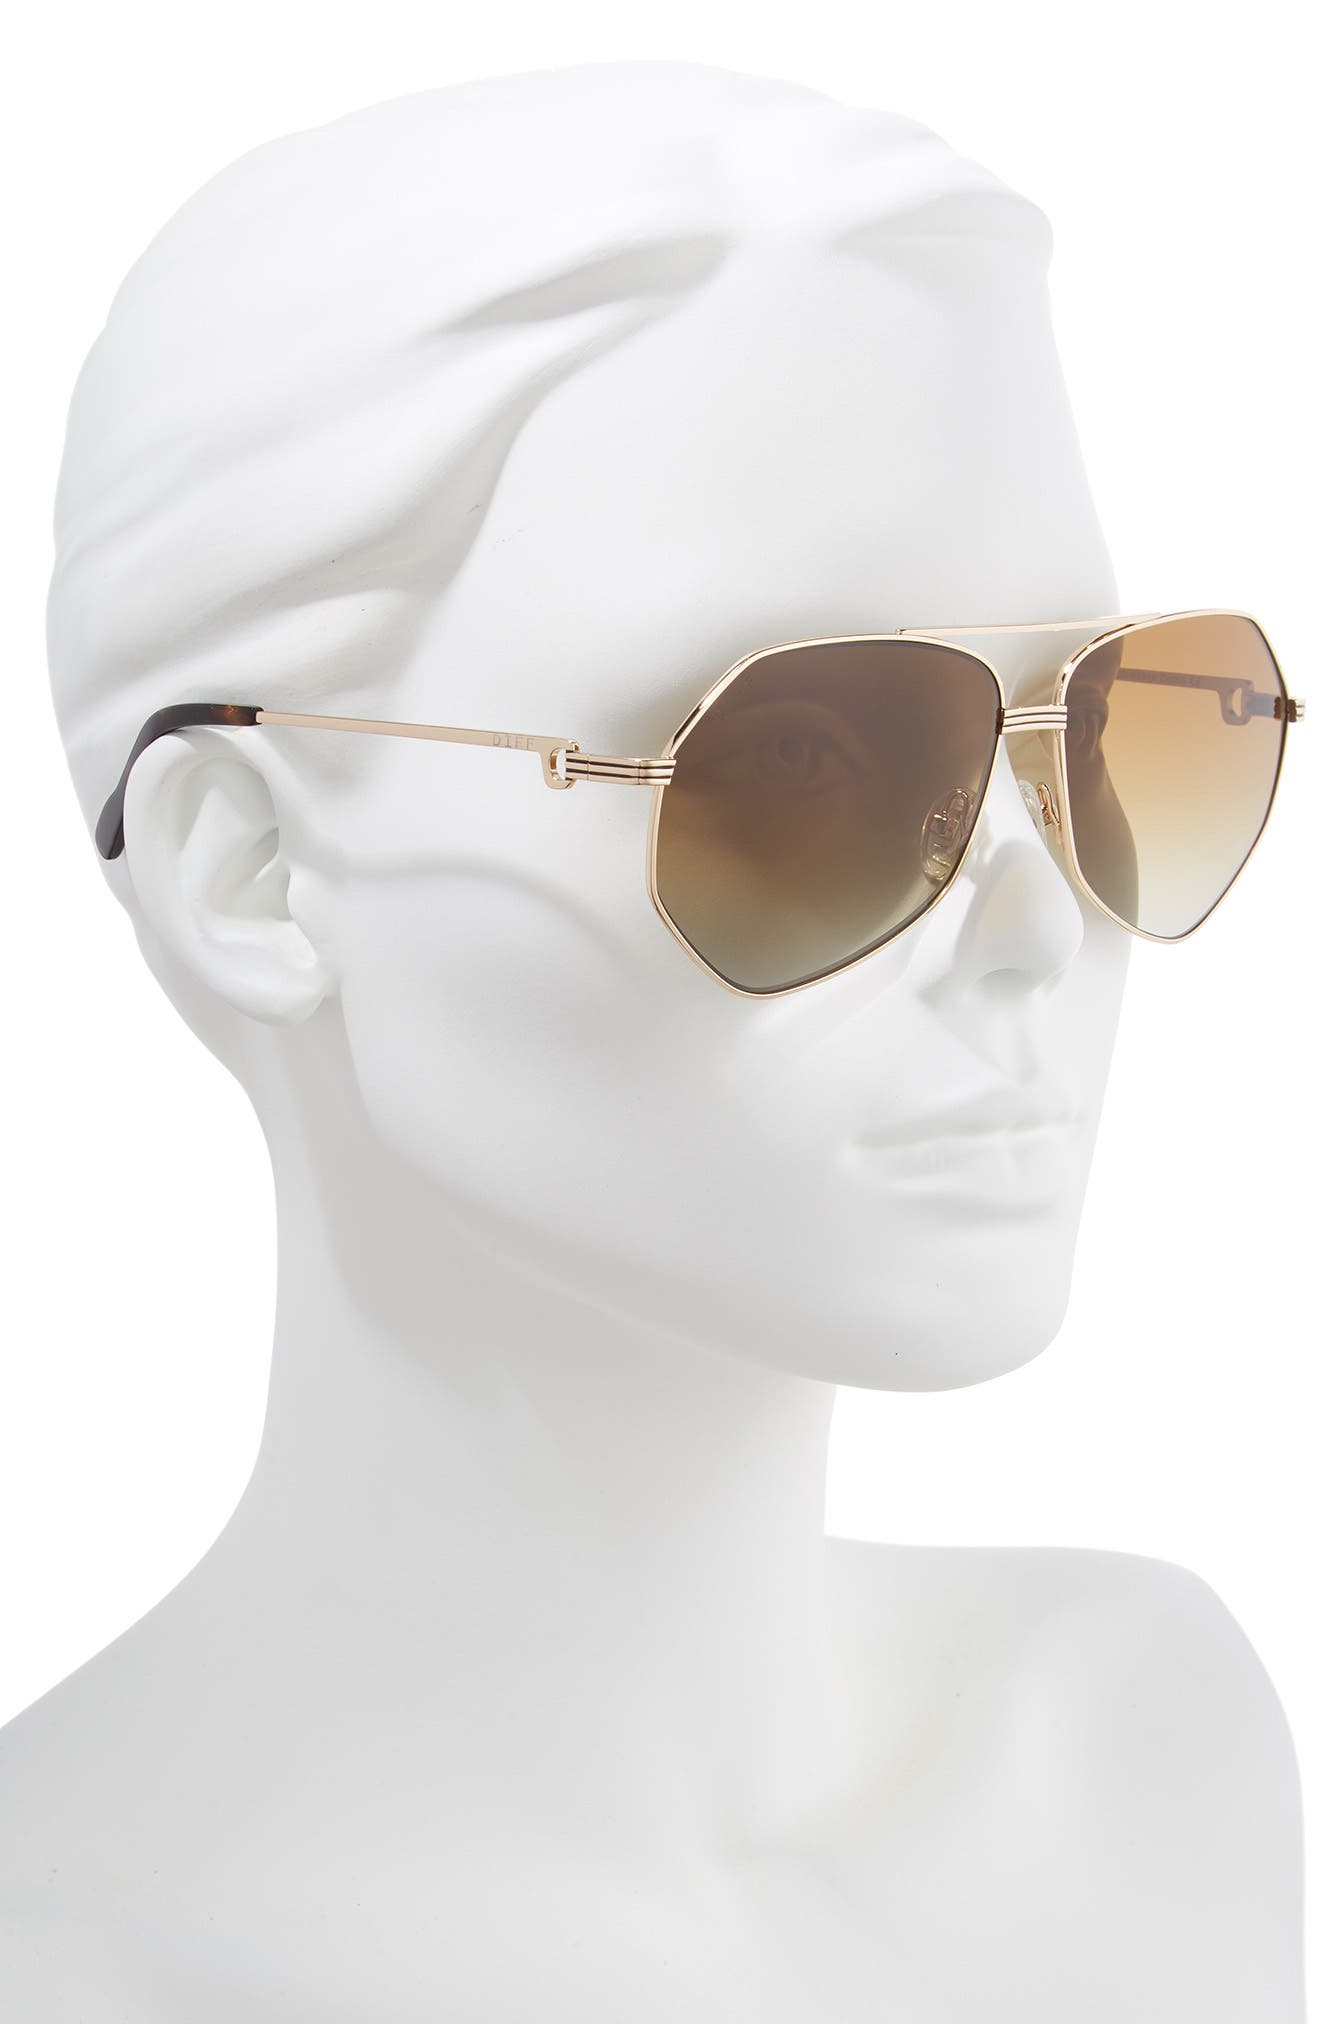 Sydney Sunglasses,                             Alternate thumbnail 2, color,                             GOLD/ BROWN